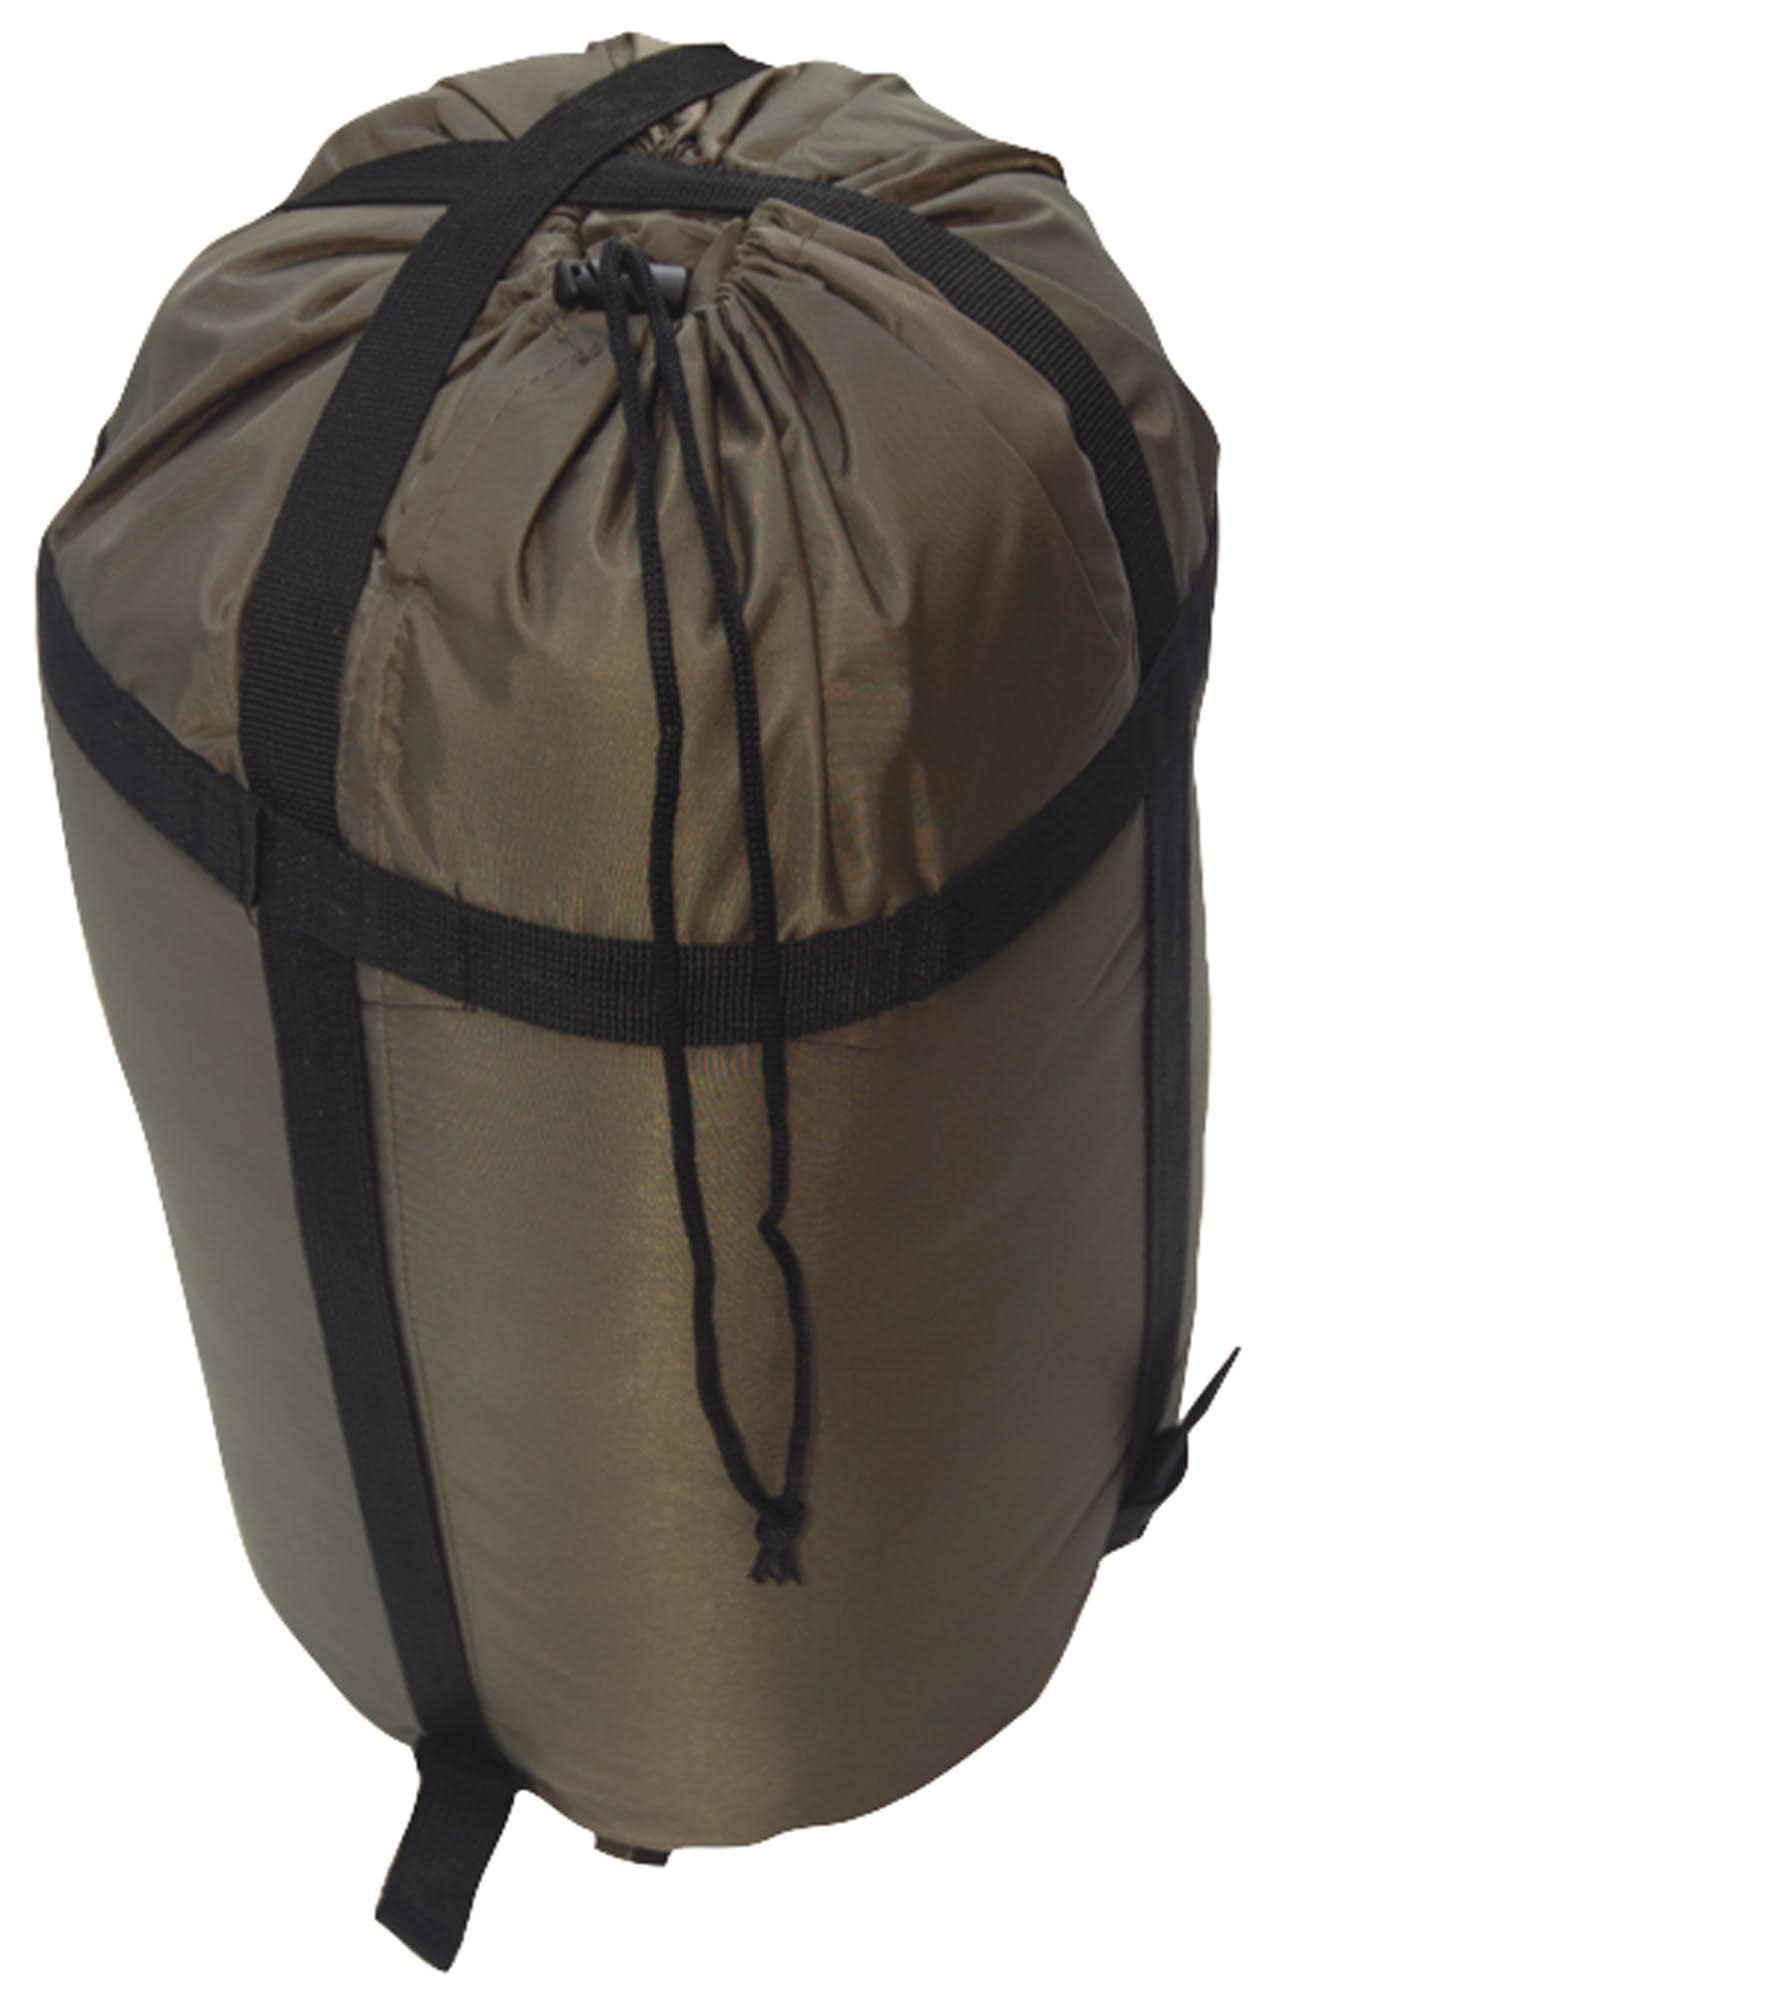 t921340-Sac de couchage Opex grand froid extreme - T921340